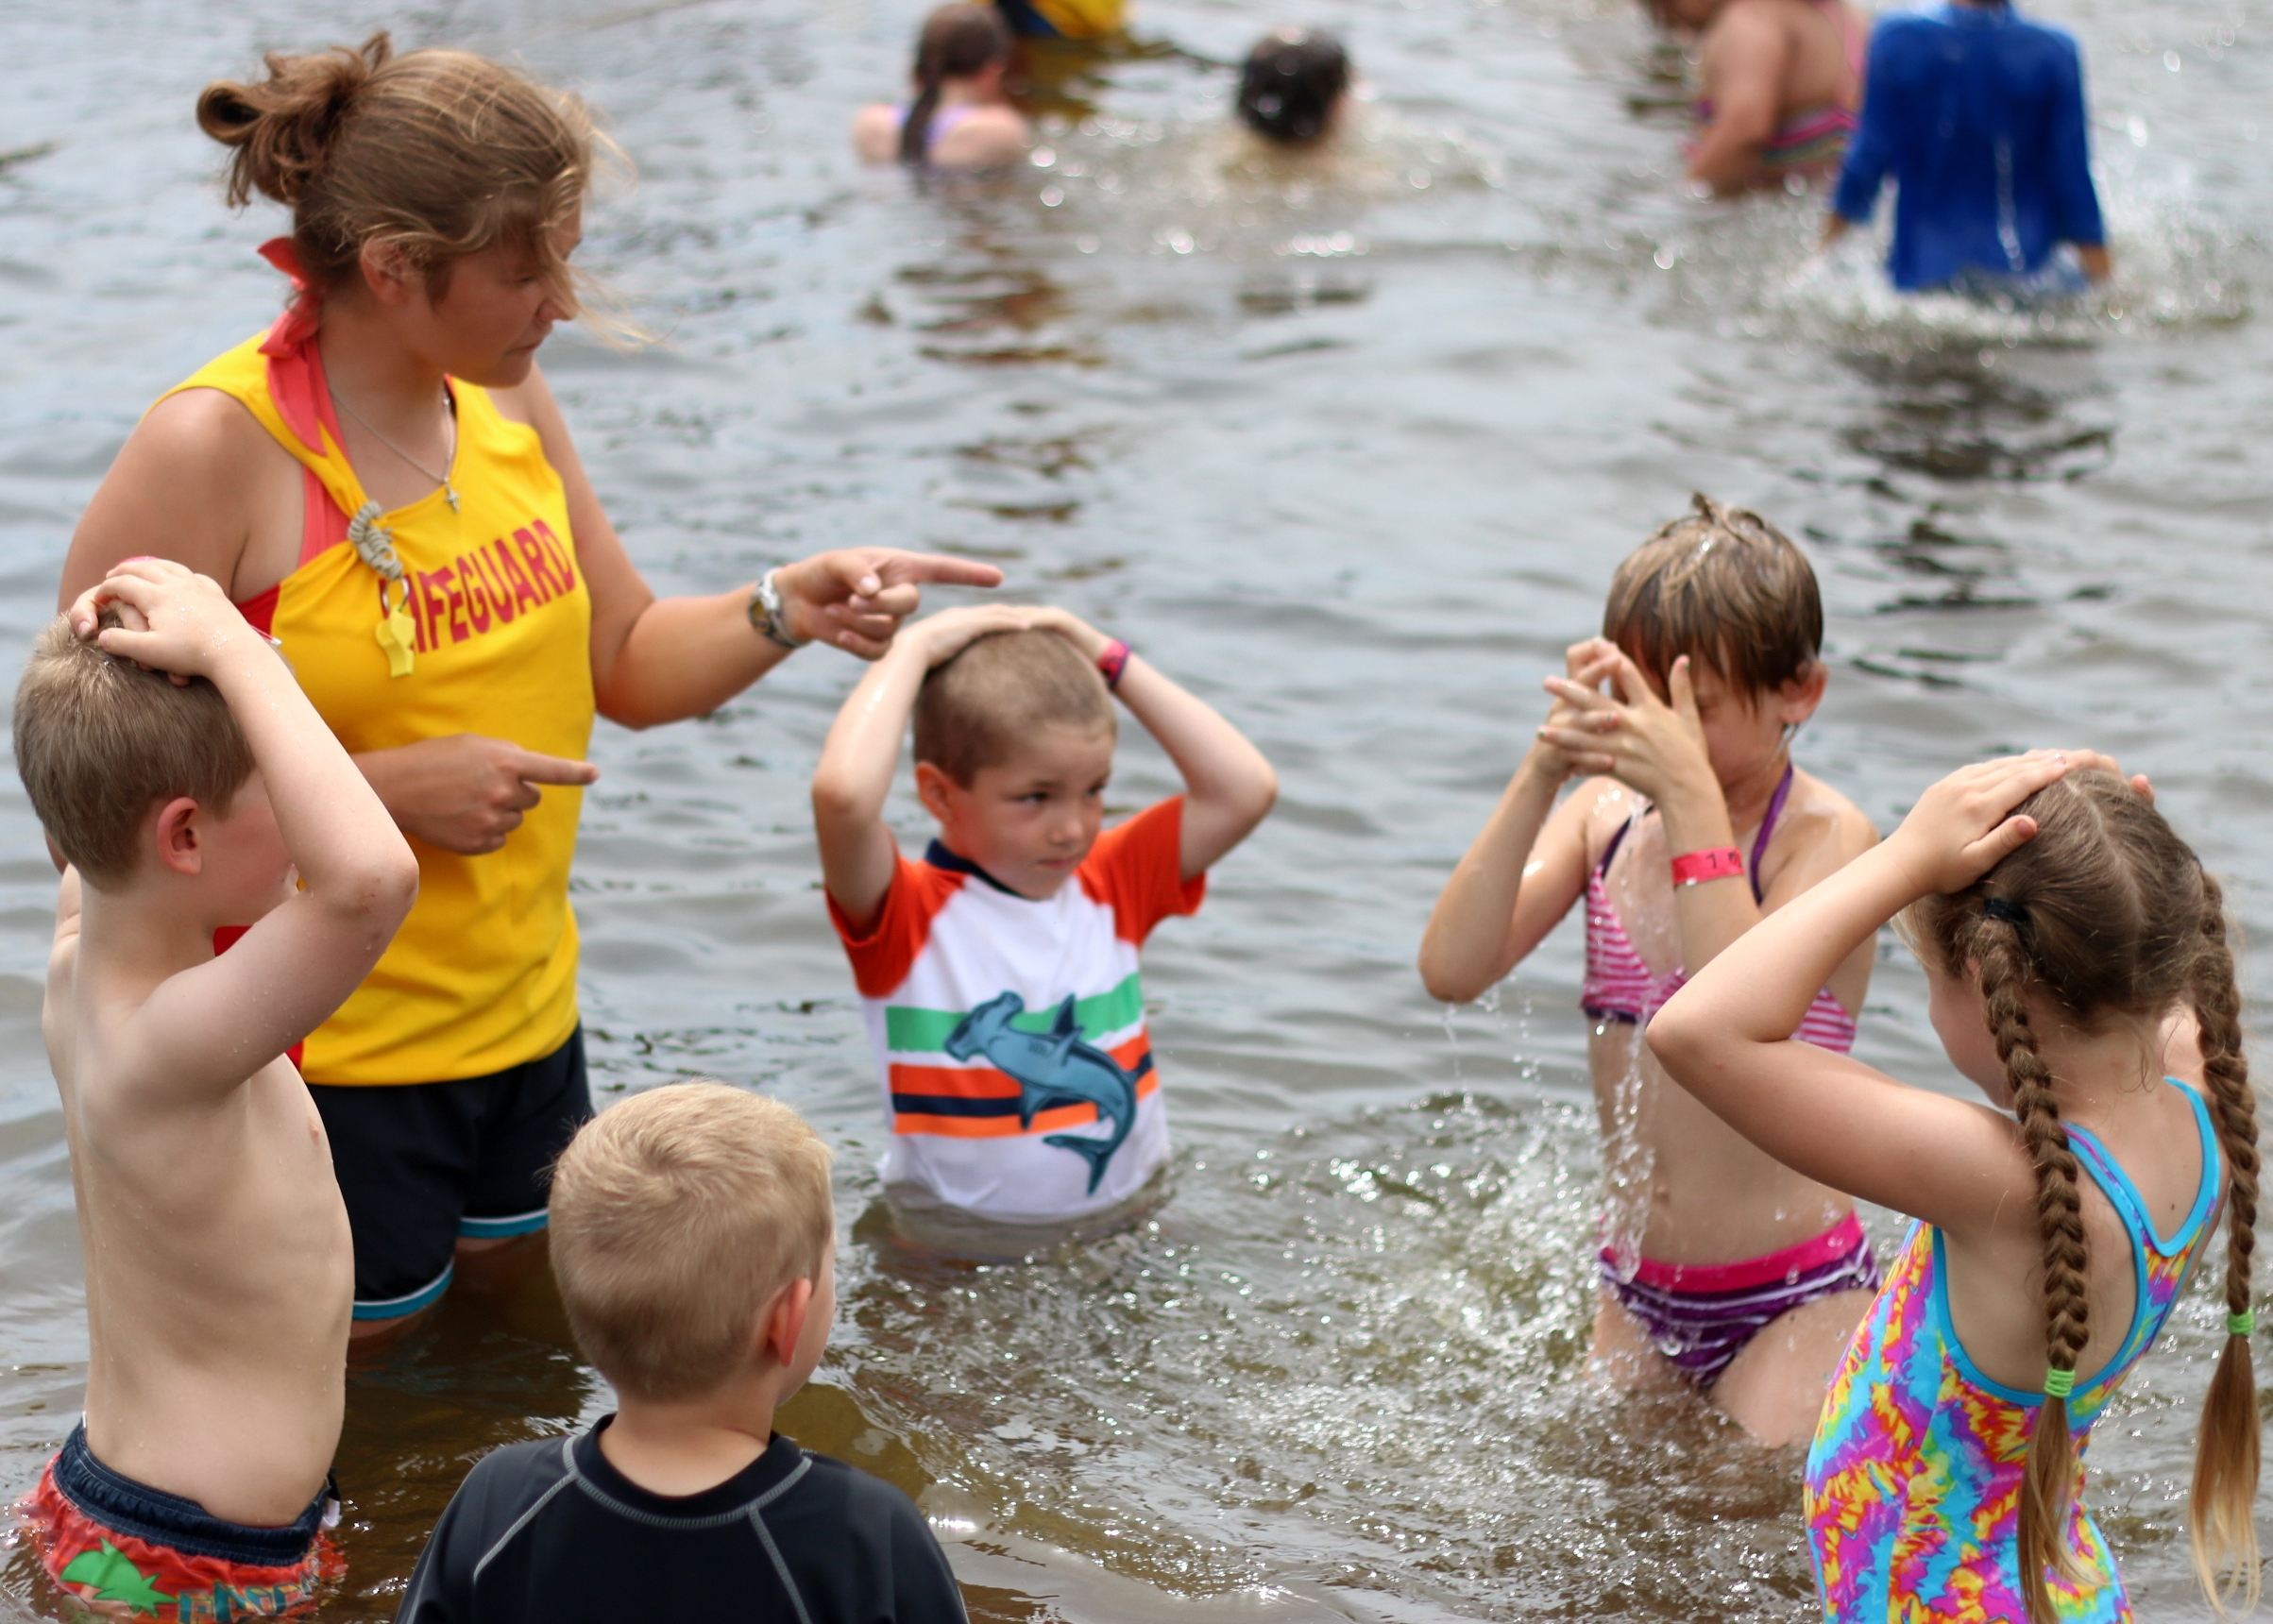 teaching swimming lessons, christian adventure Summer Camp, Haliburton, Ontario